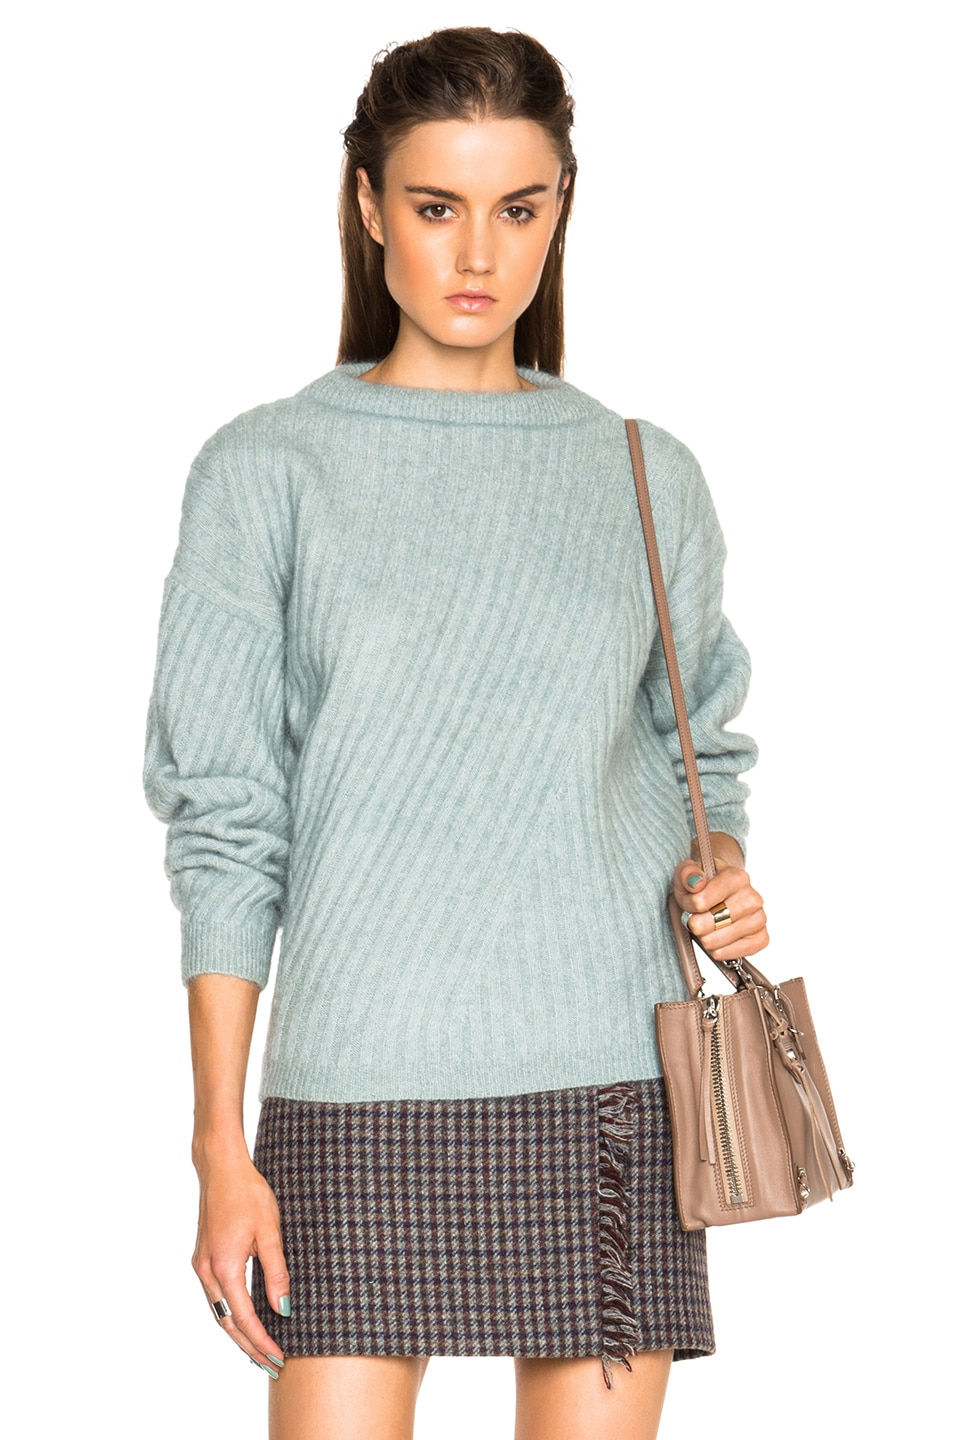 12860485ed671 Image 1 of Acne Studios Virdis Mohair Sweater in Dull Jade Green